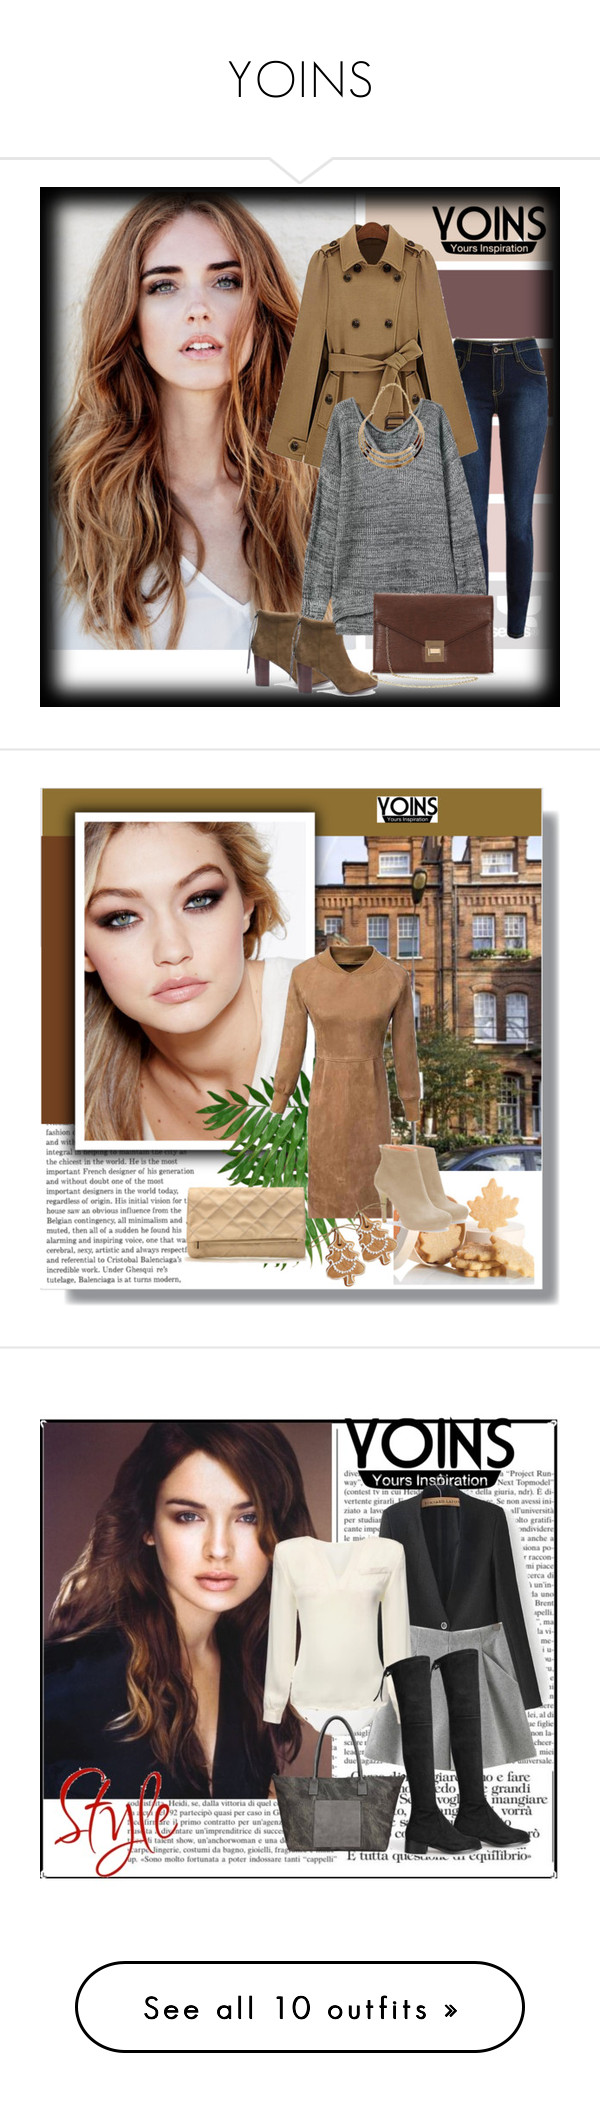 """YOINS"" by sabine-rose ❤ liked on Polyvore featuring yoins, women's clothing, women's fashion, women, female, woman, misses, juniors, yoinscollection and Pier 1 Imports"